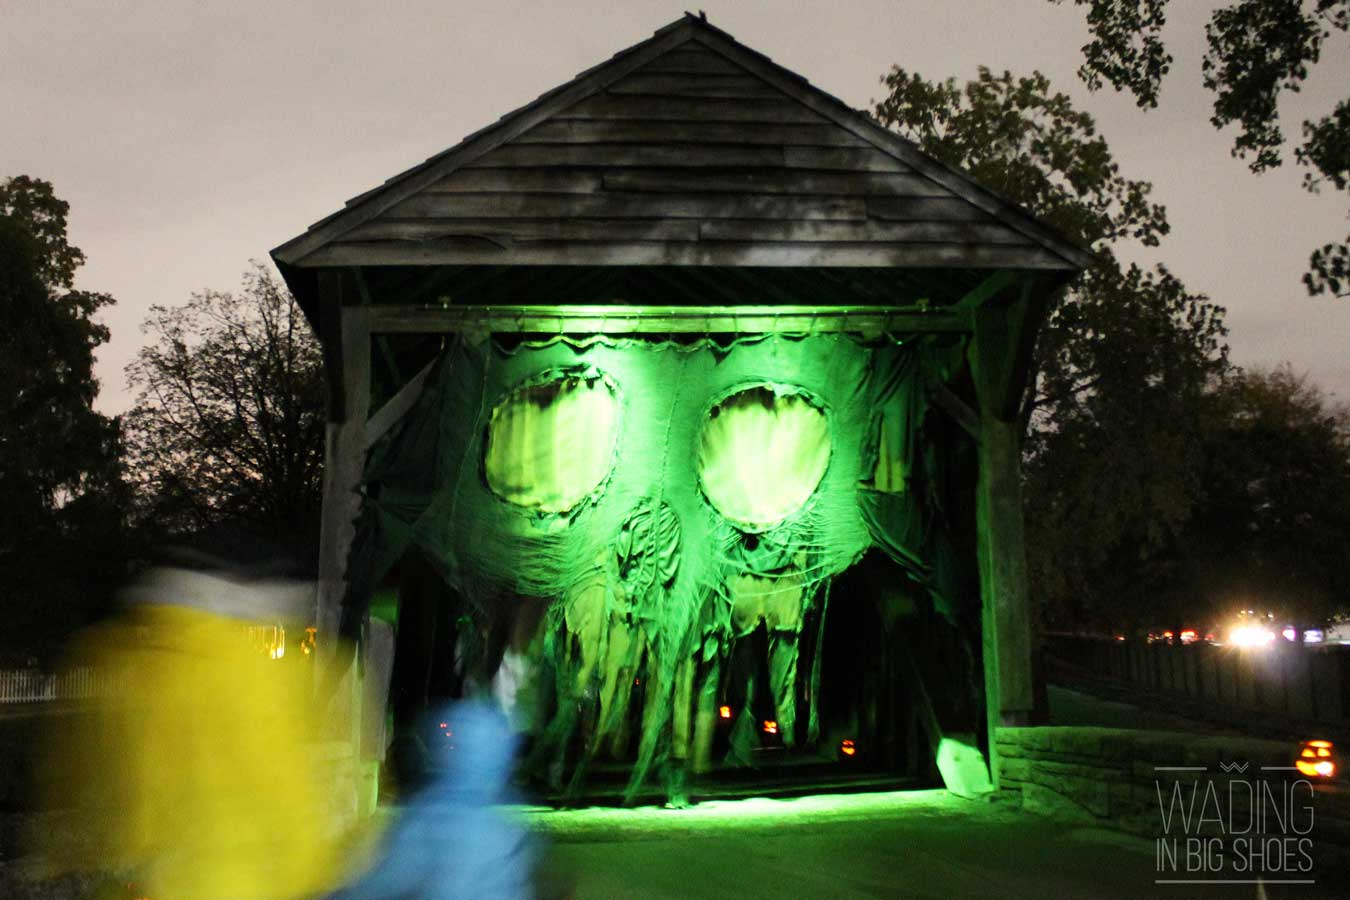 Hallowe'en in Greenfield Village: Tips To Make The Most Of Your Visit | via Wading in Big Shoes